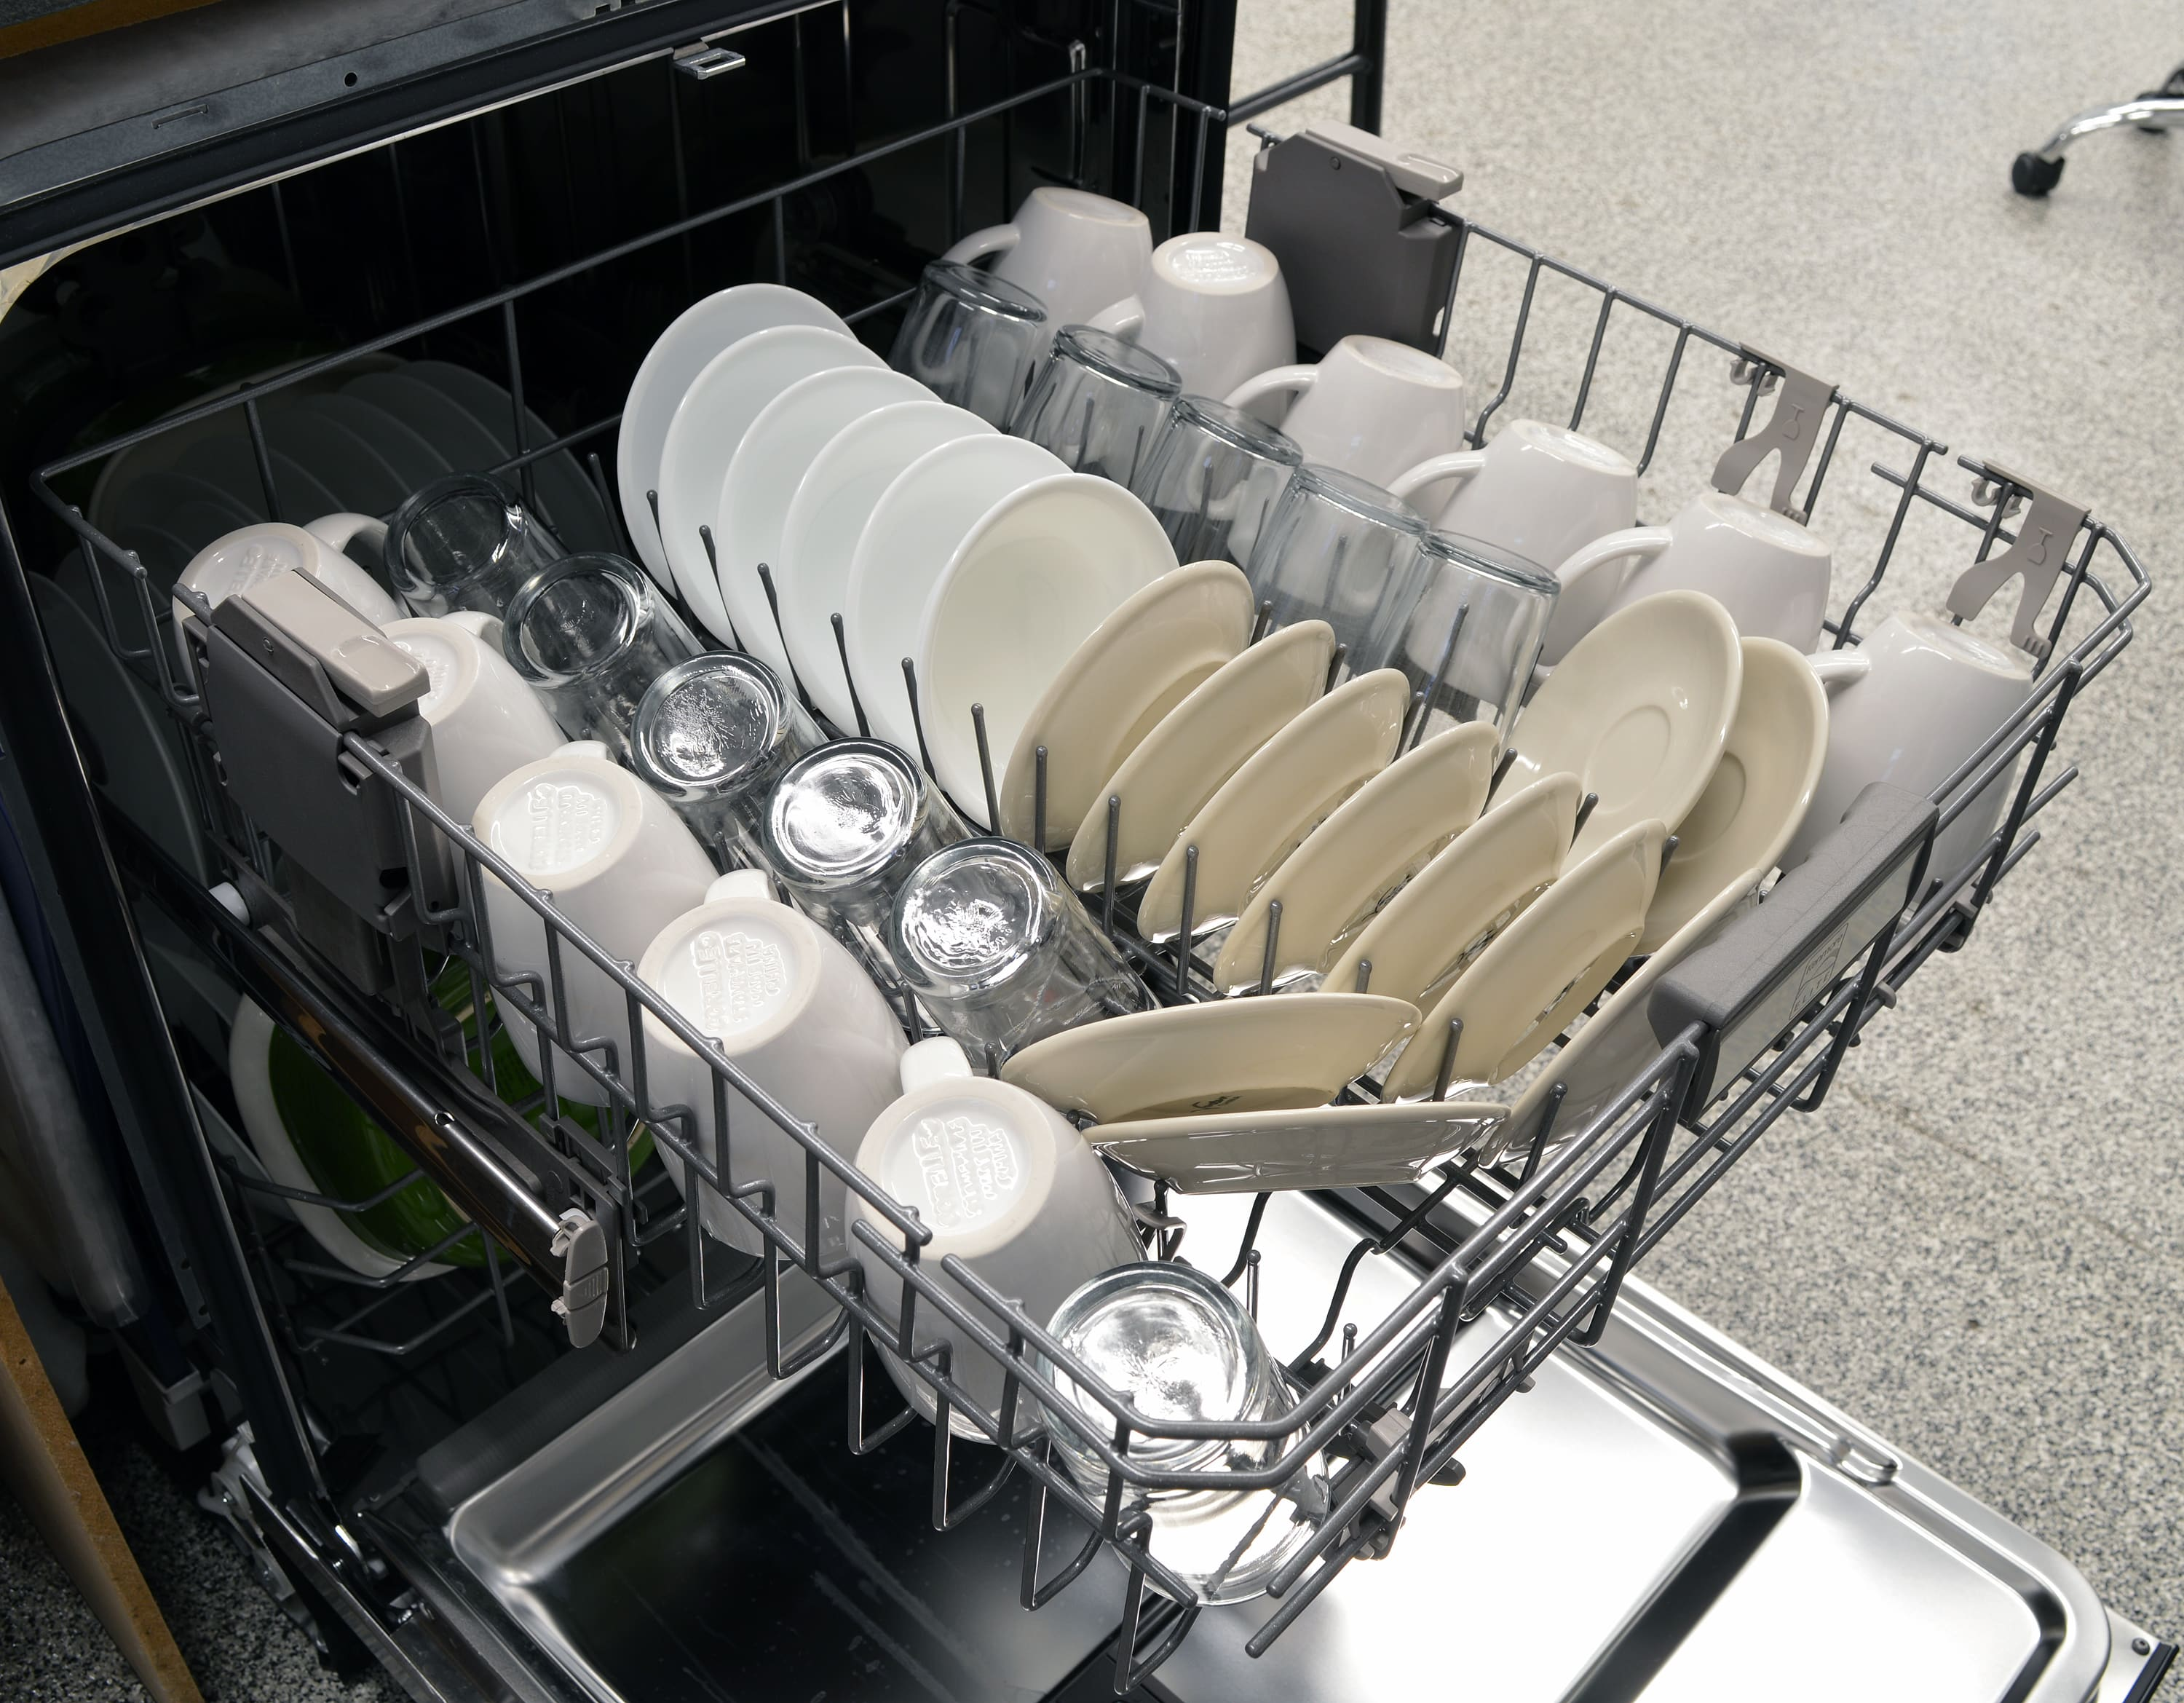 Kenmore Elite 14753 Dishwasher Review Reviewed Com